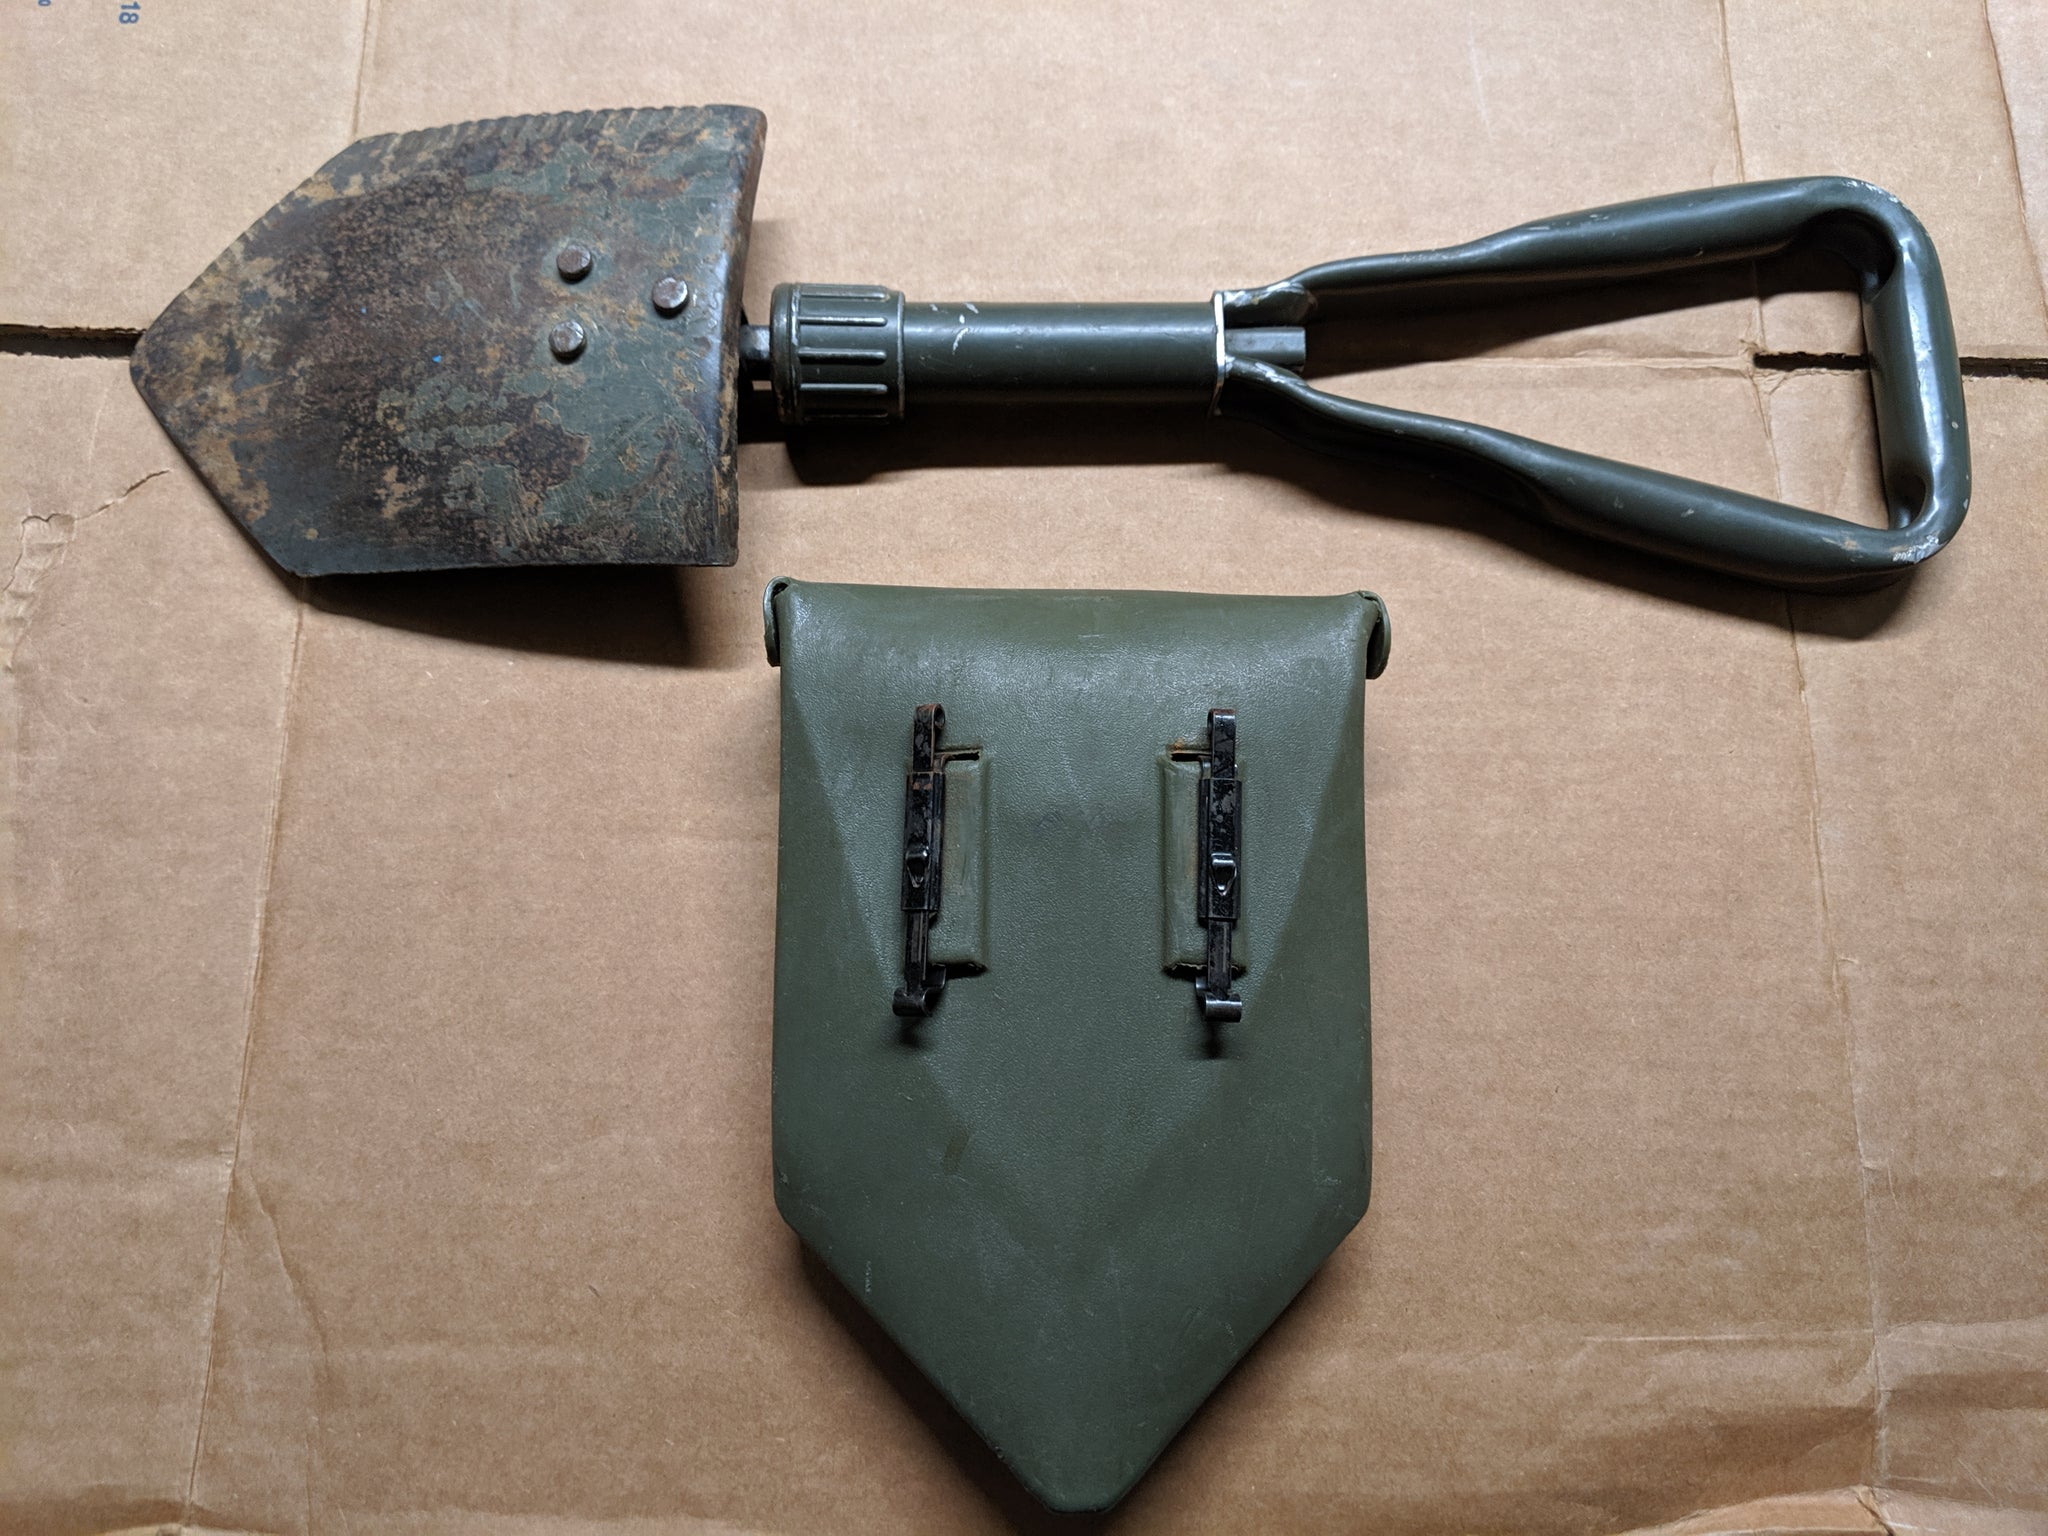 Used Genuine German BUND Military Issue Shovel